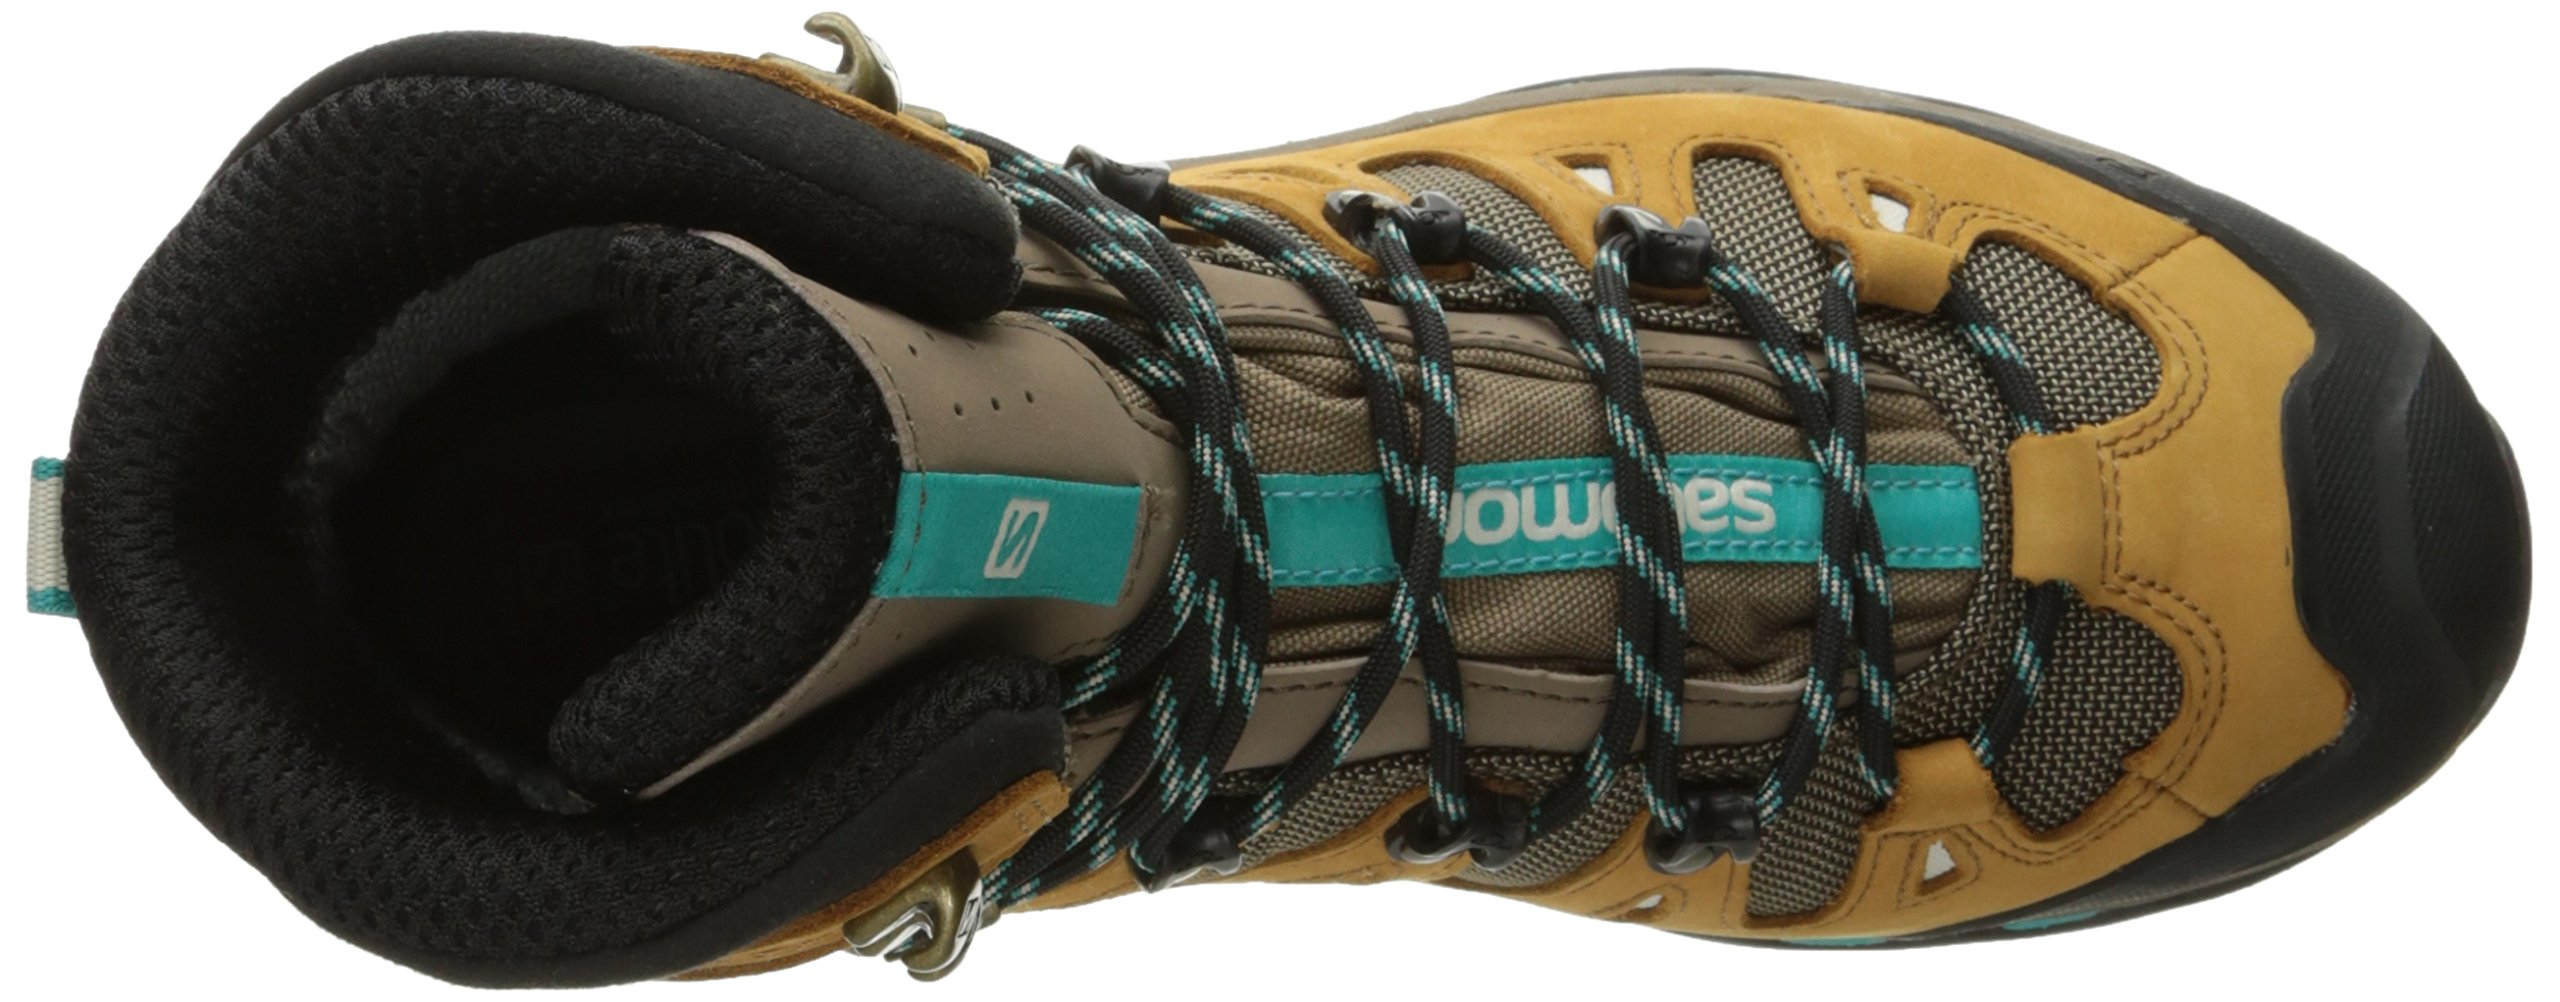 Salomon Women's Quest 4d 2 Gtx W Backpacking Boot, Shrew/Camel Gold Leather/Teal Blue Fabric, 8.5 M US by Salomon (Image #8)